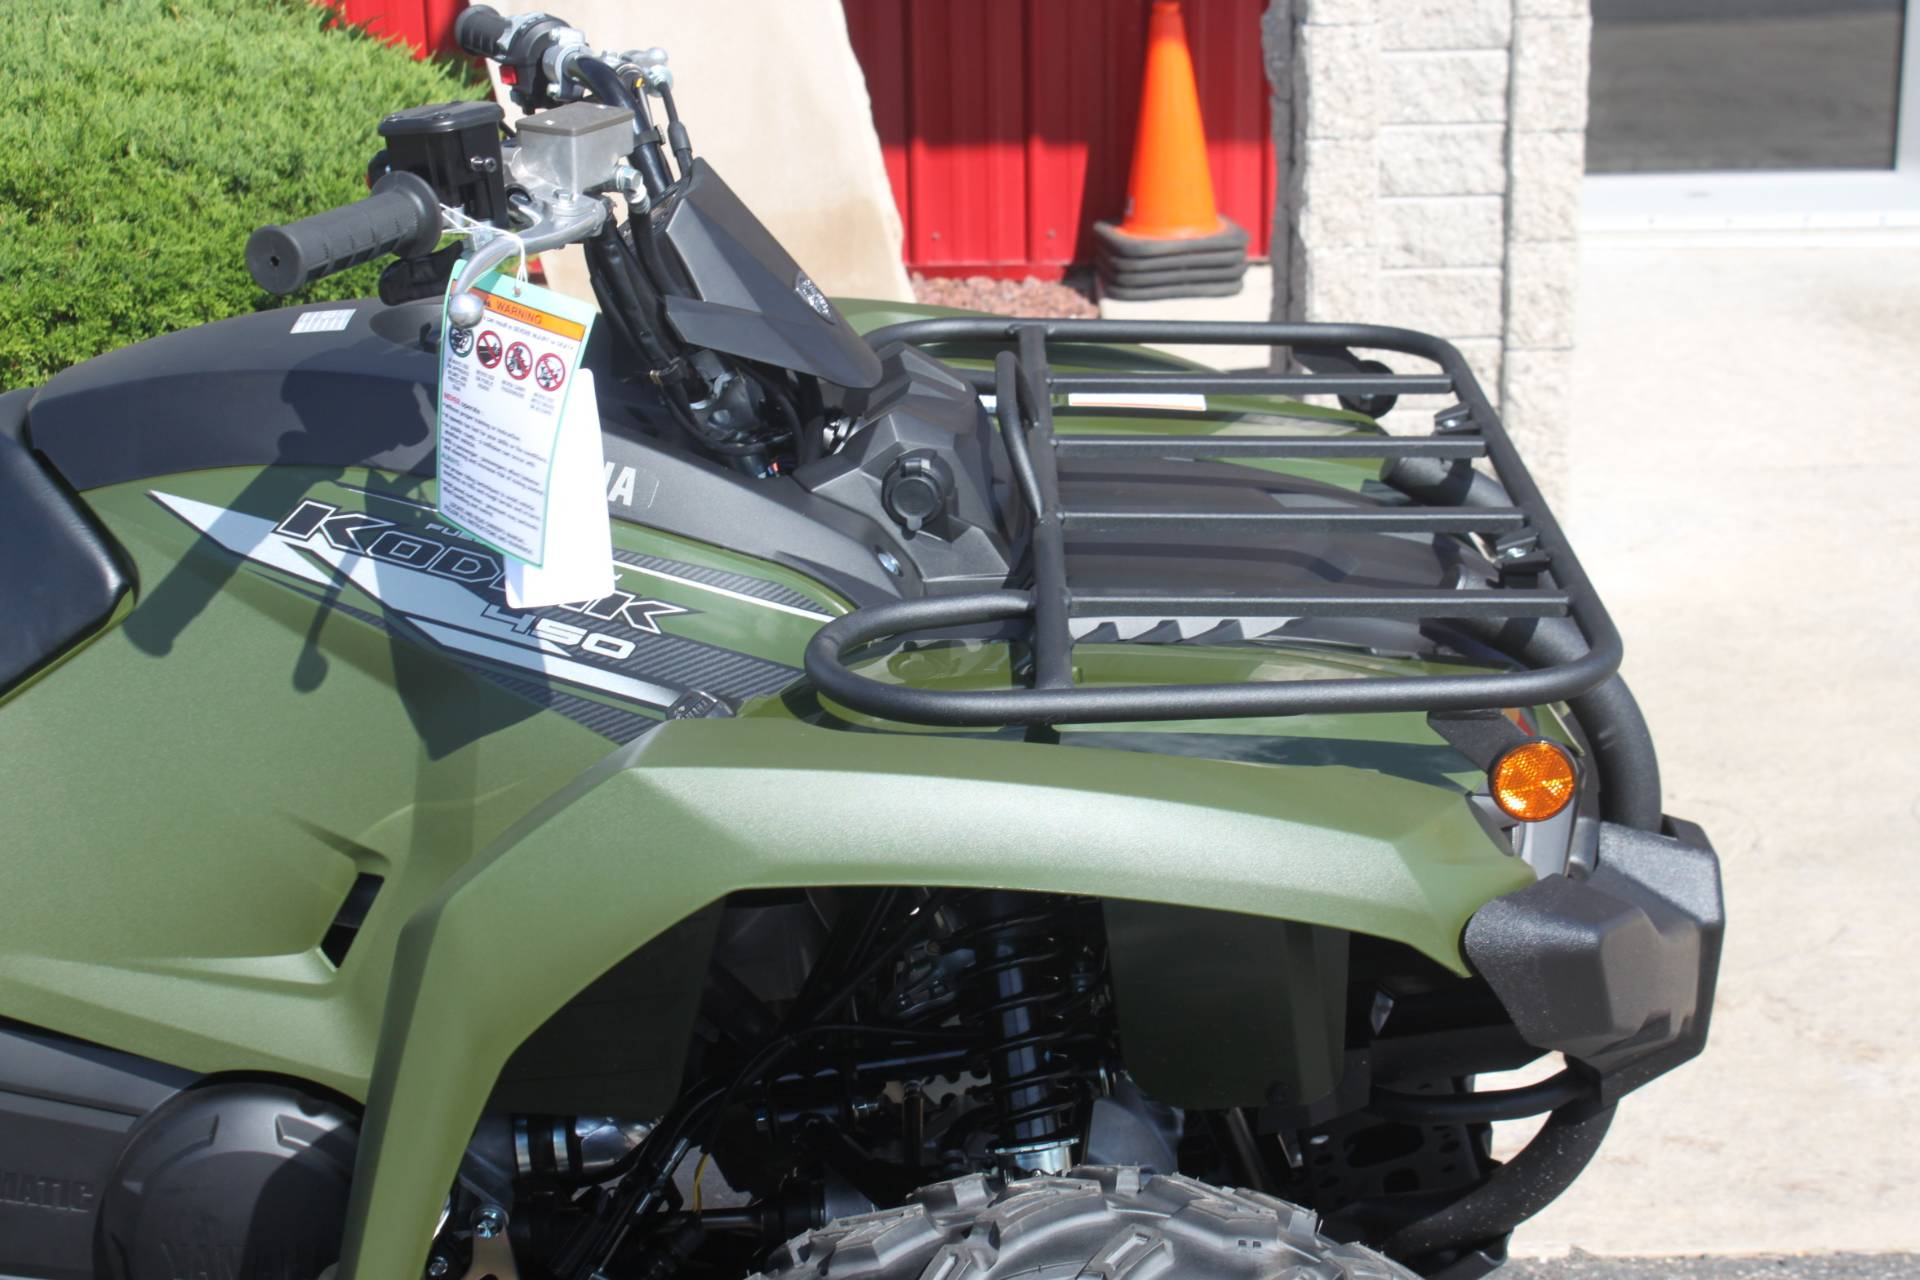 2020 Yamaha Kodiak 450 in Janesville, Wisconsin - Photo 13